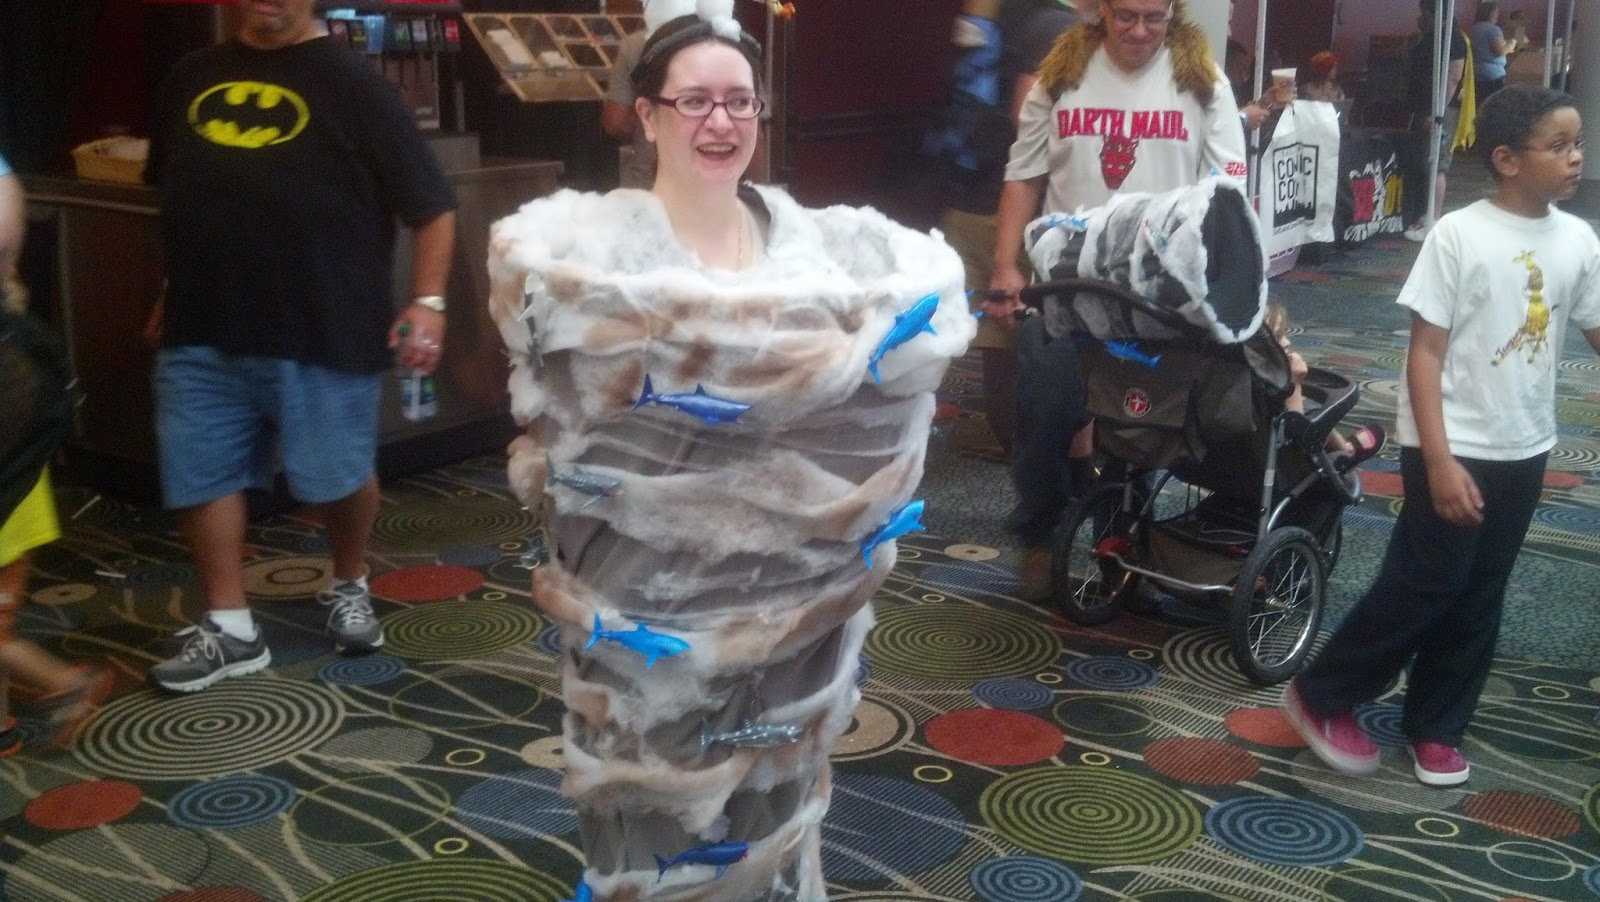 Sharknado costume - photo#27